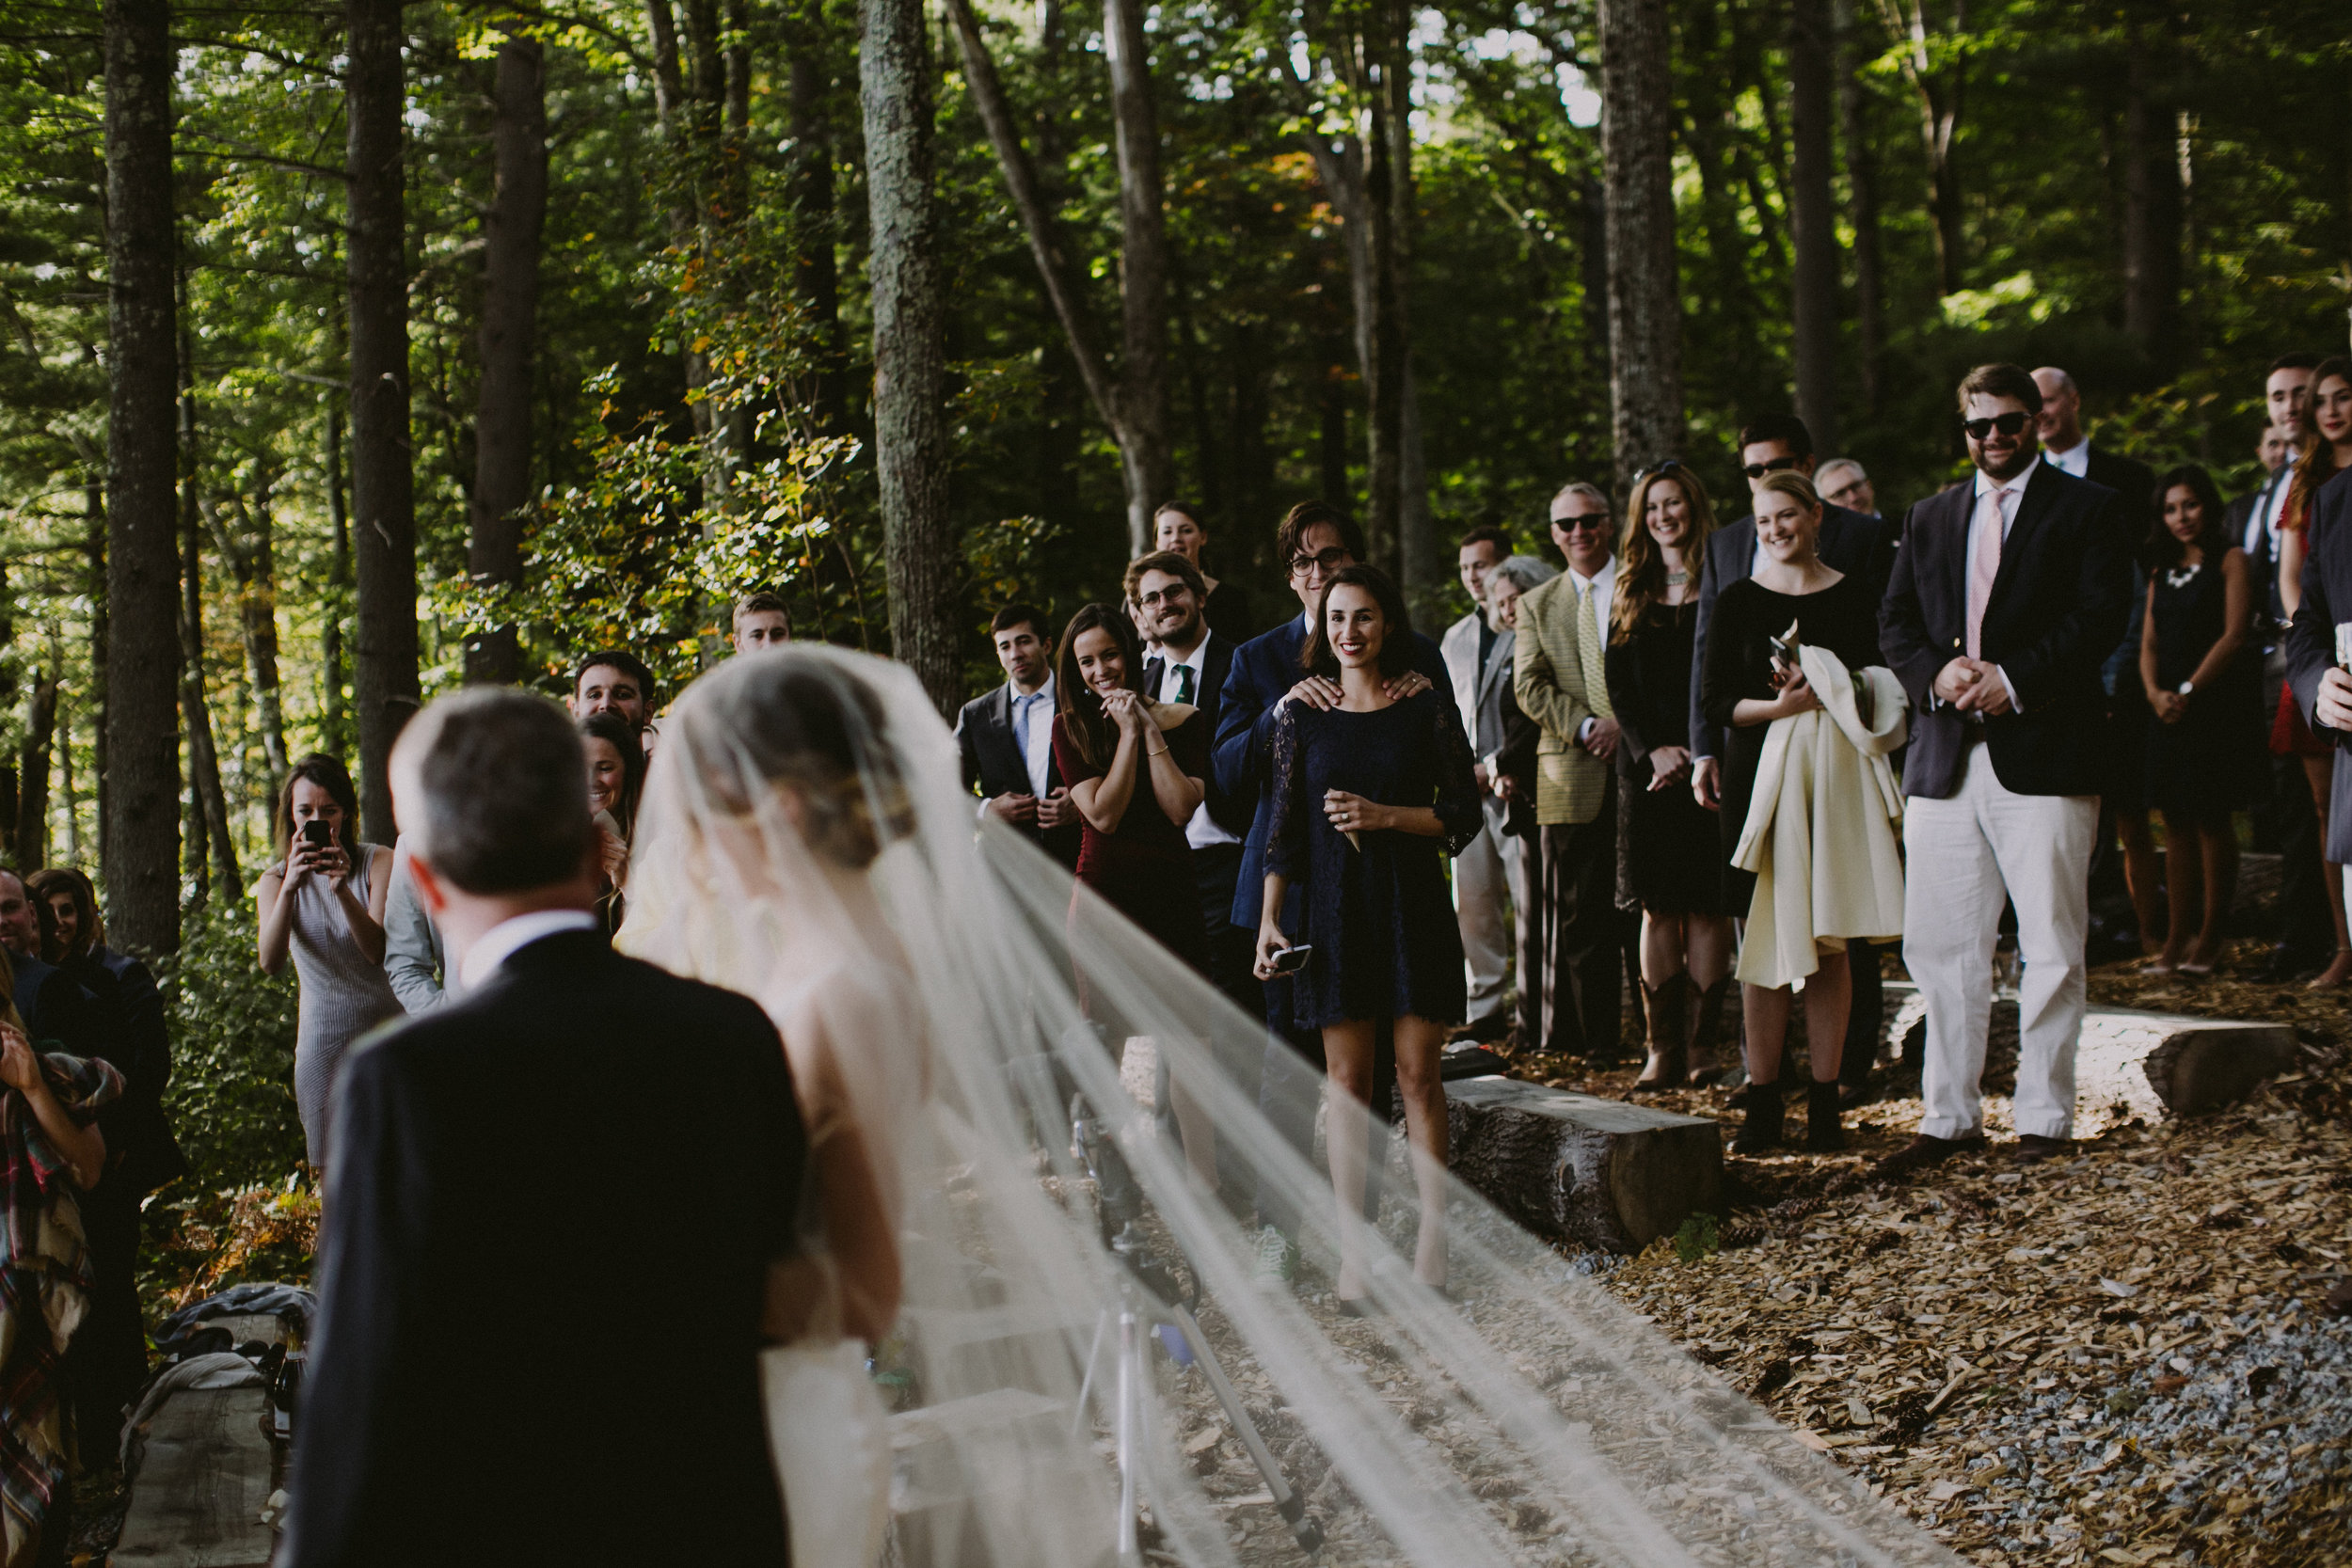 windsor mountain summer camp wedding NH chellise michael photography 1774.jpg